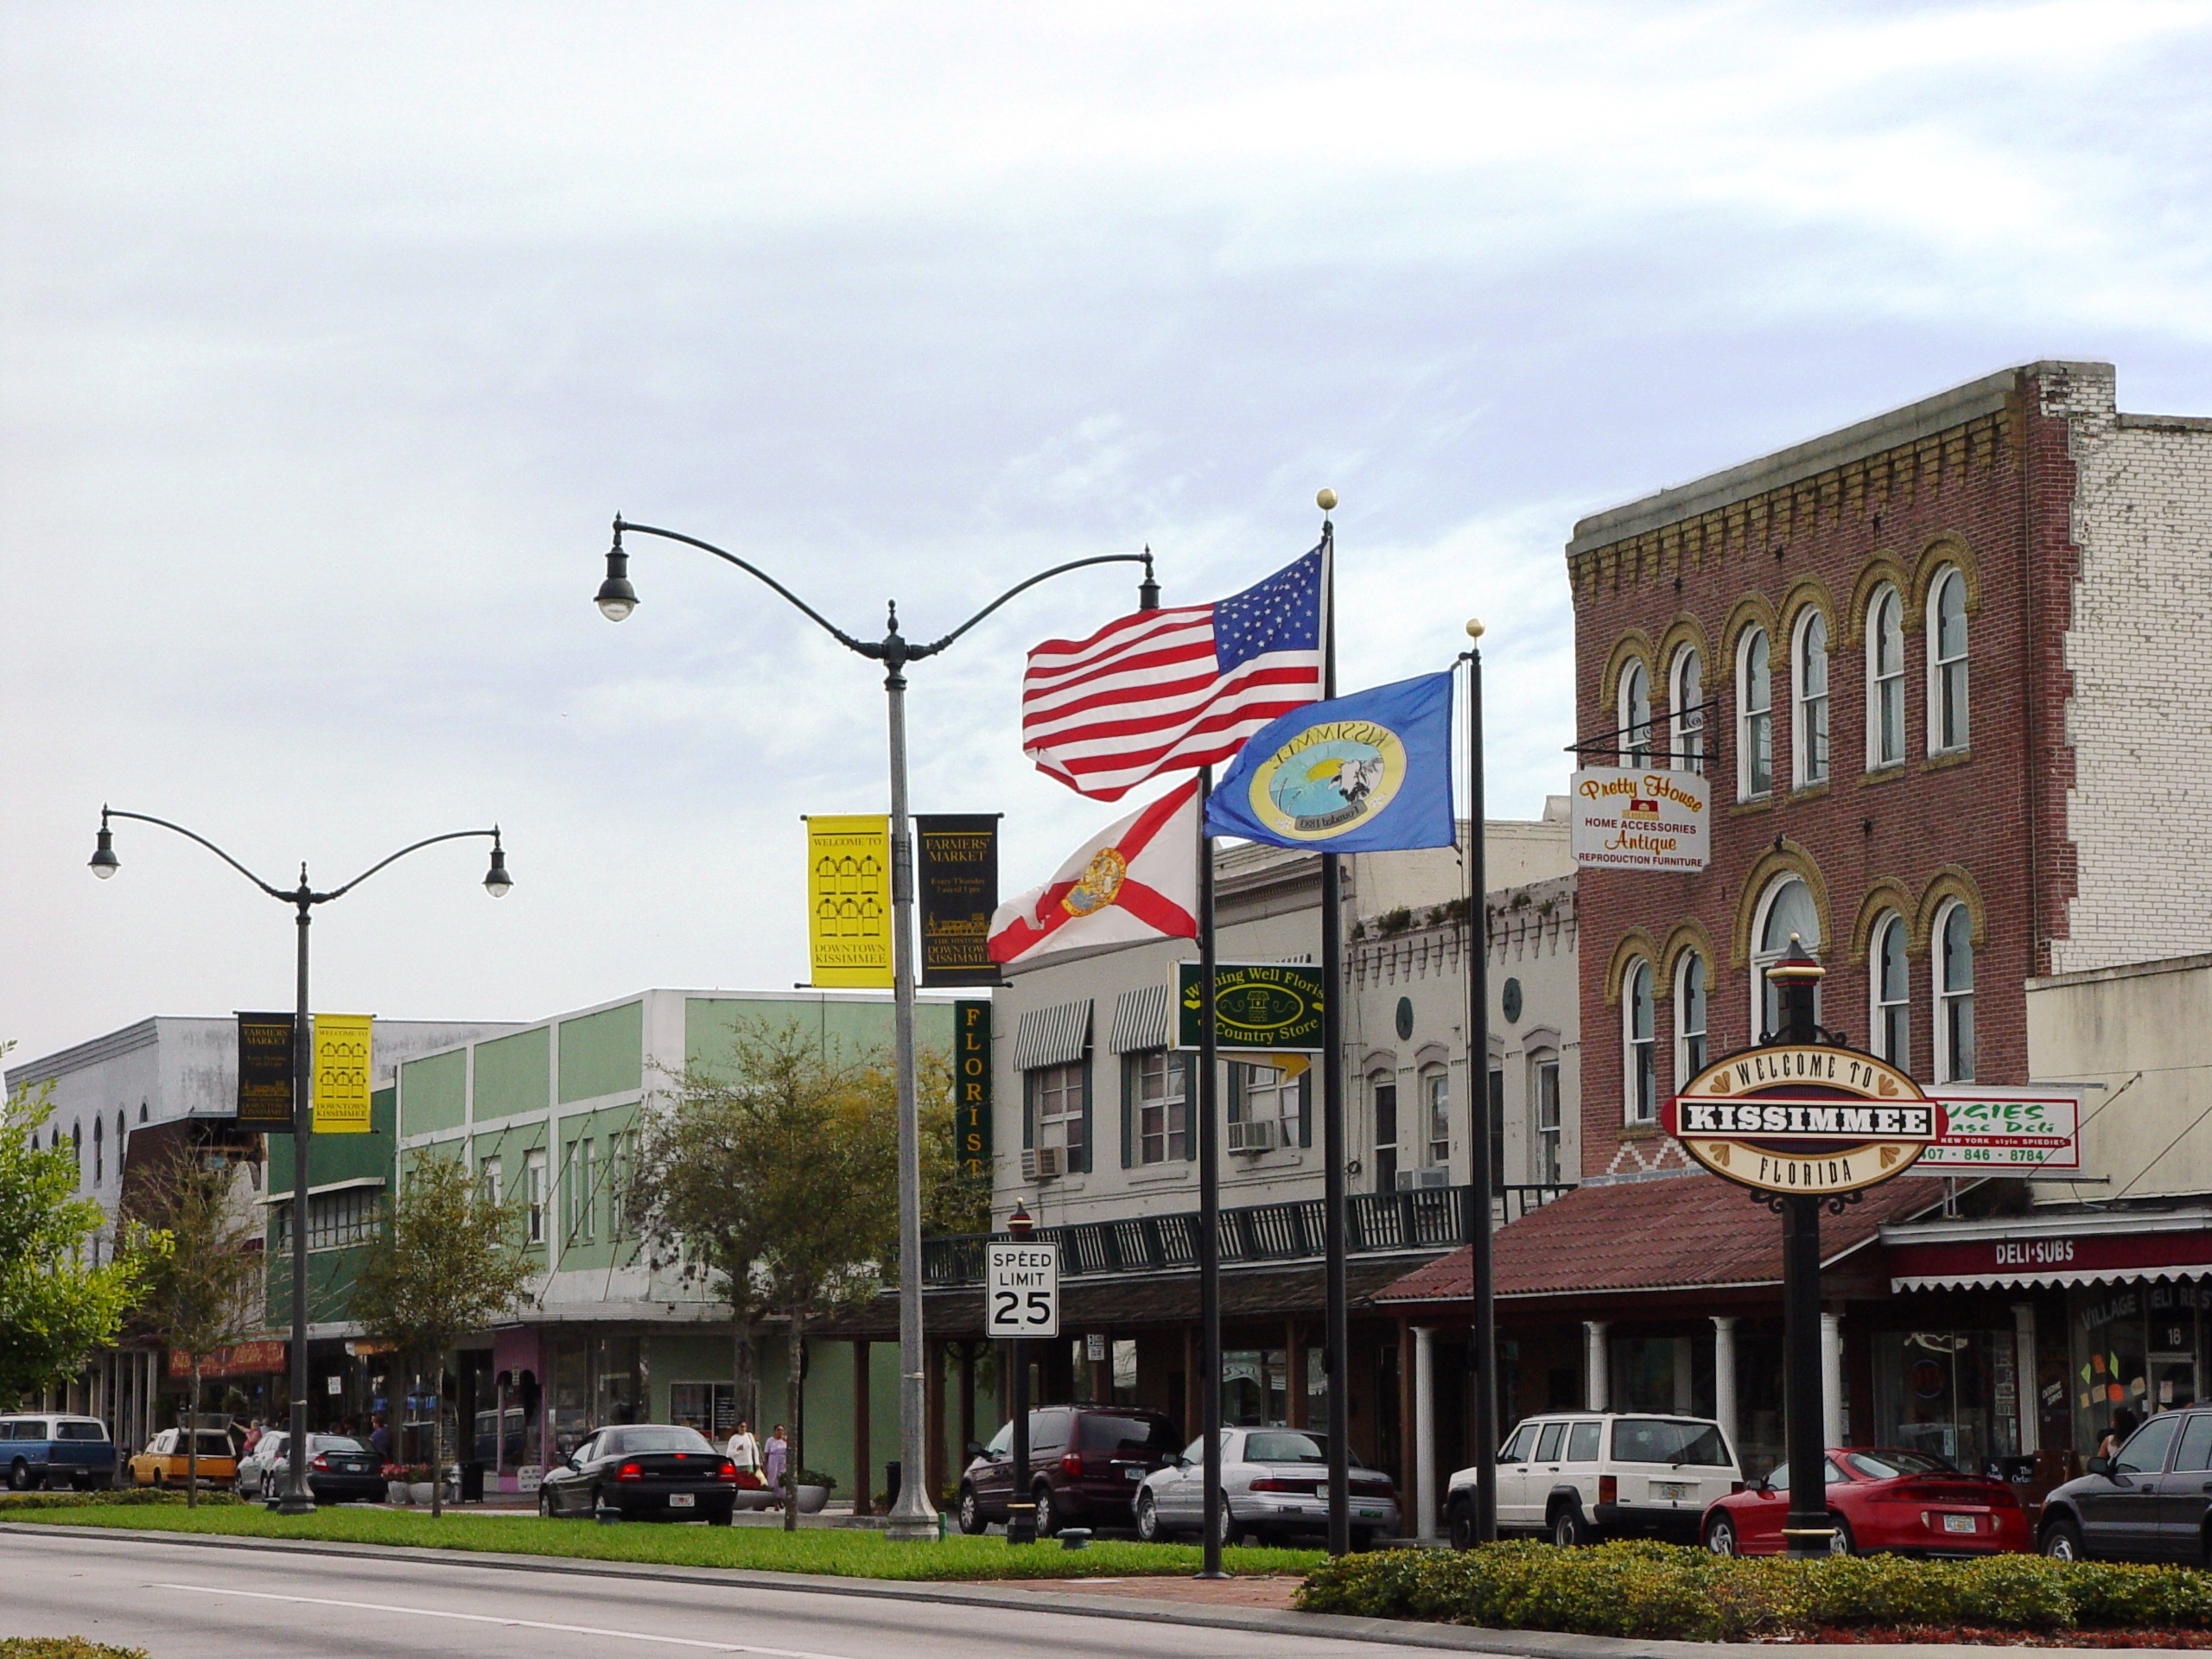 Historic buildings in downtown Kissimmee, Florida